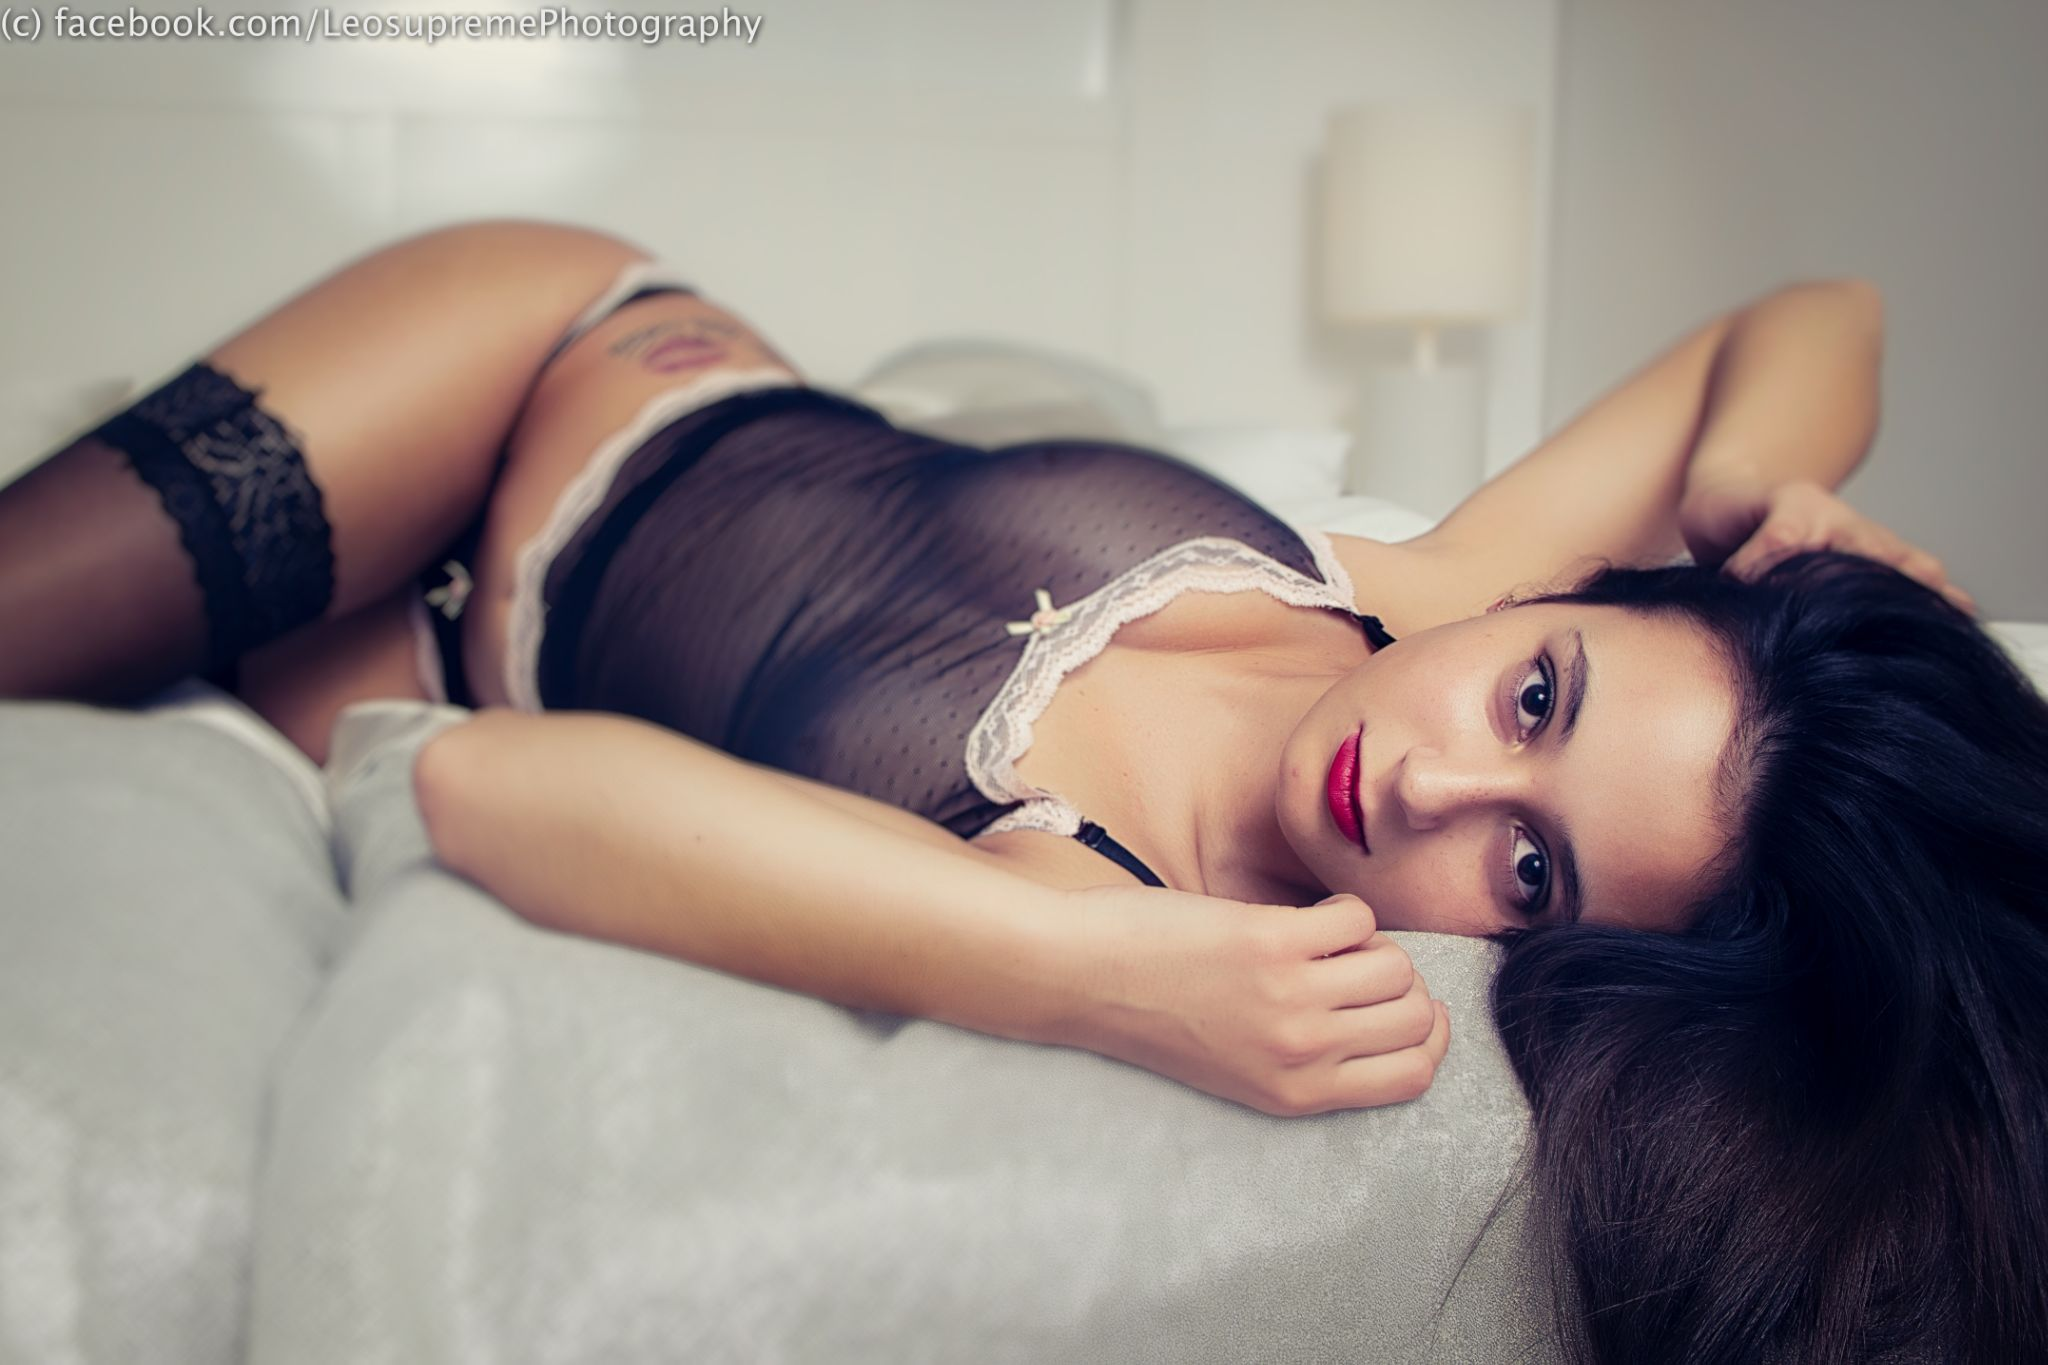 BedTime by Leosupreme-Photography